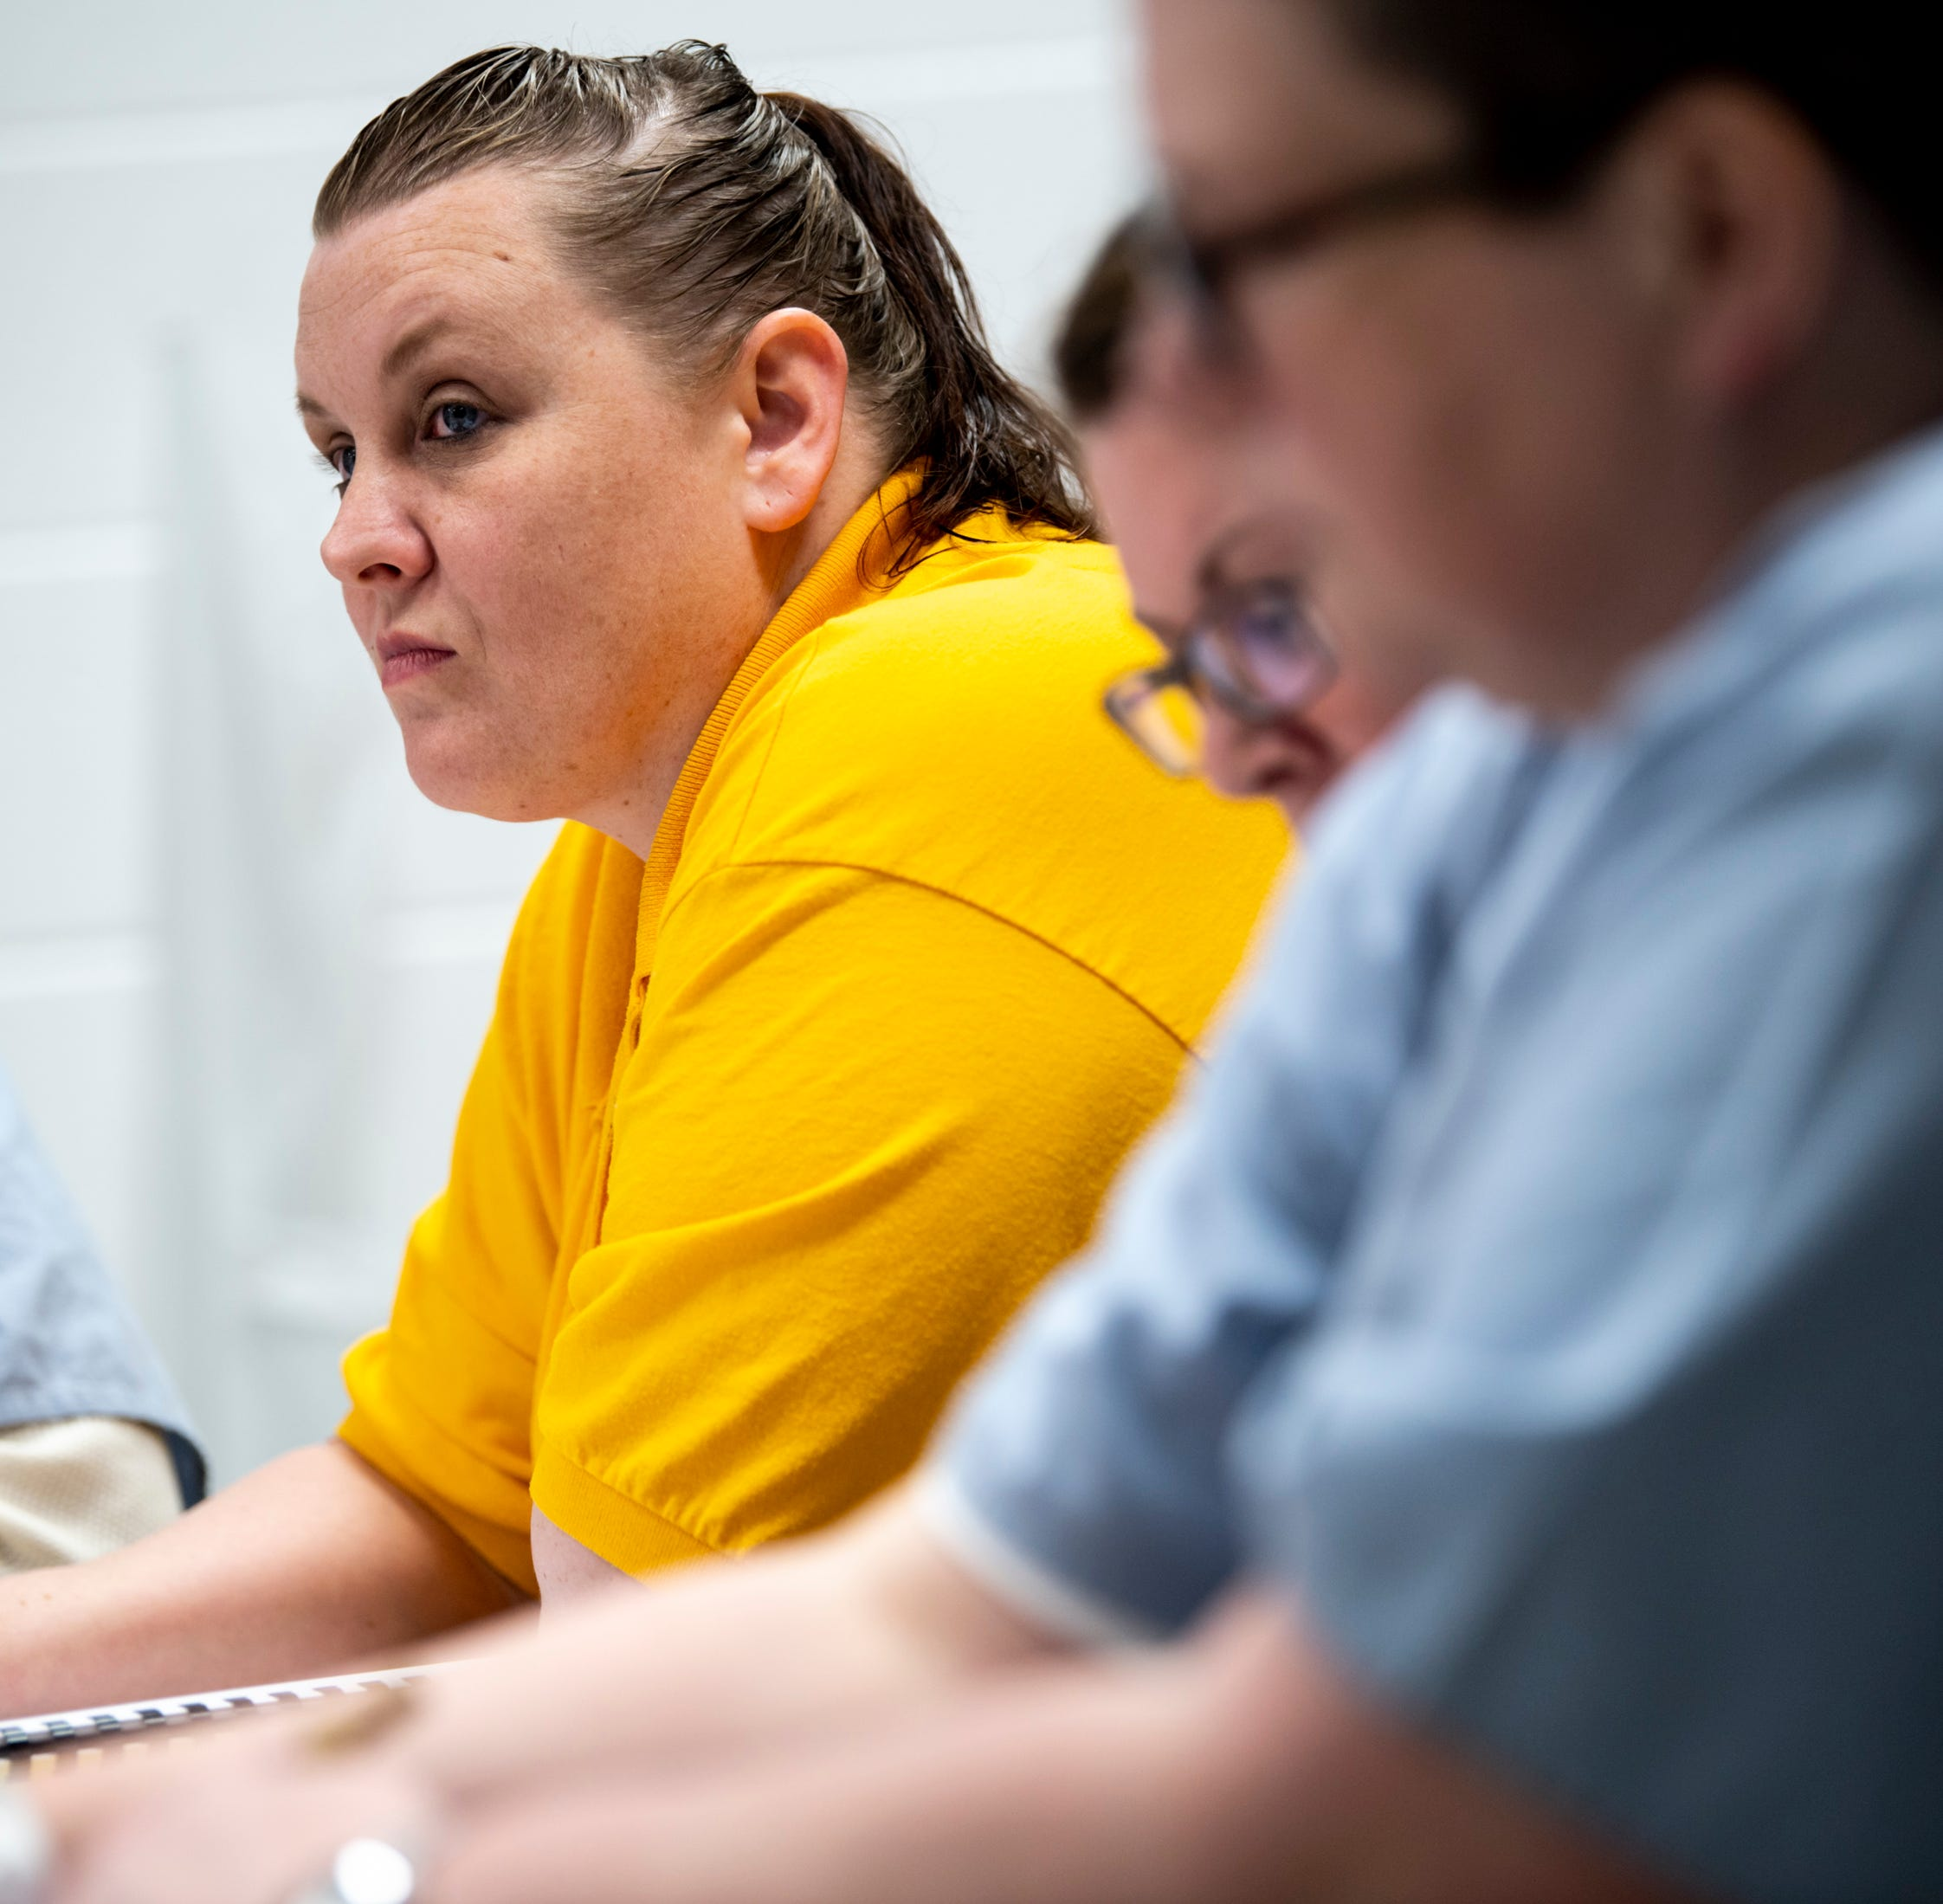 'A holy fire:' Lipscomb University's LIFE program allows incarcerated students to soar beyond prison walls